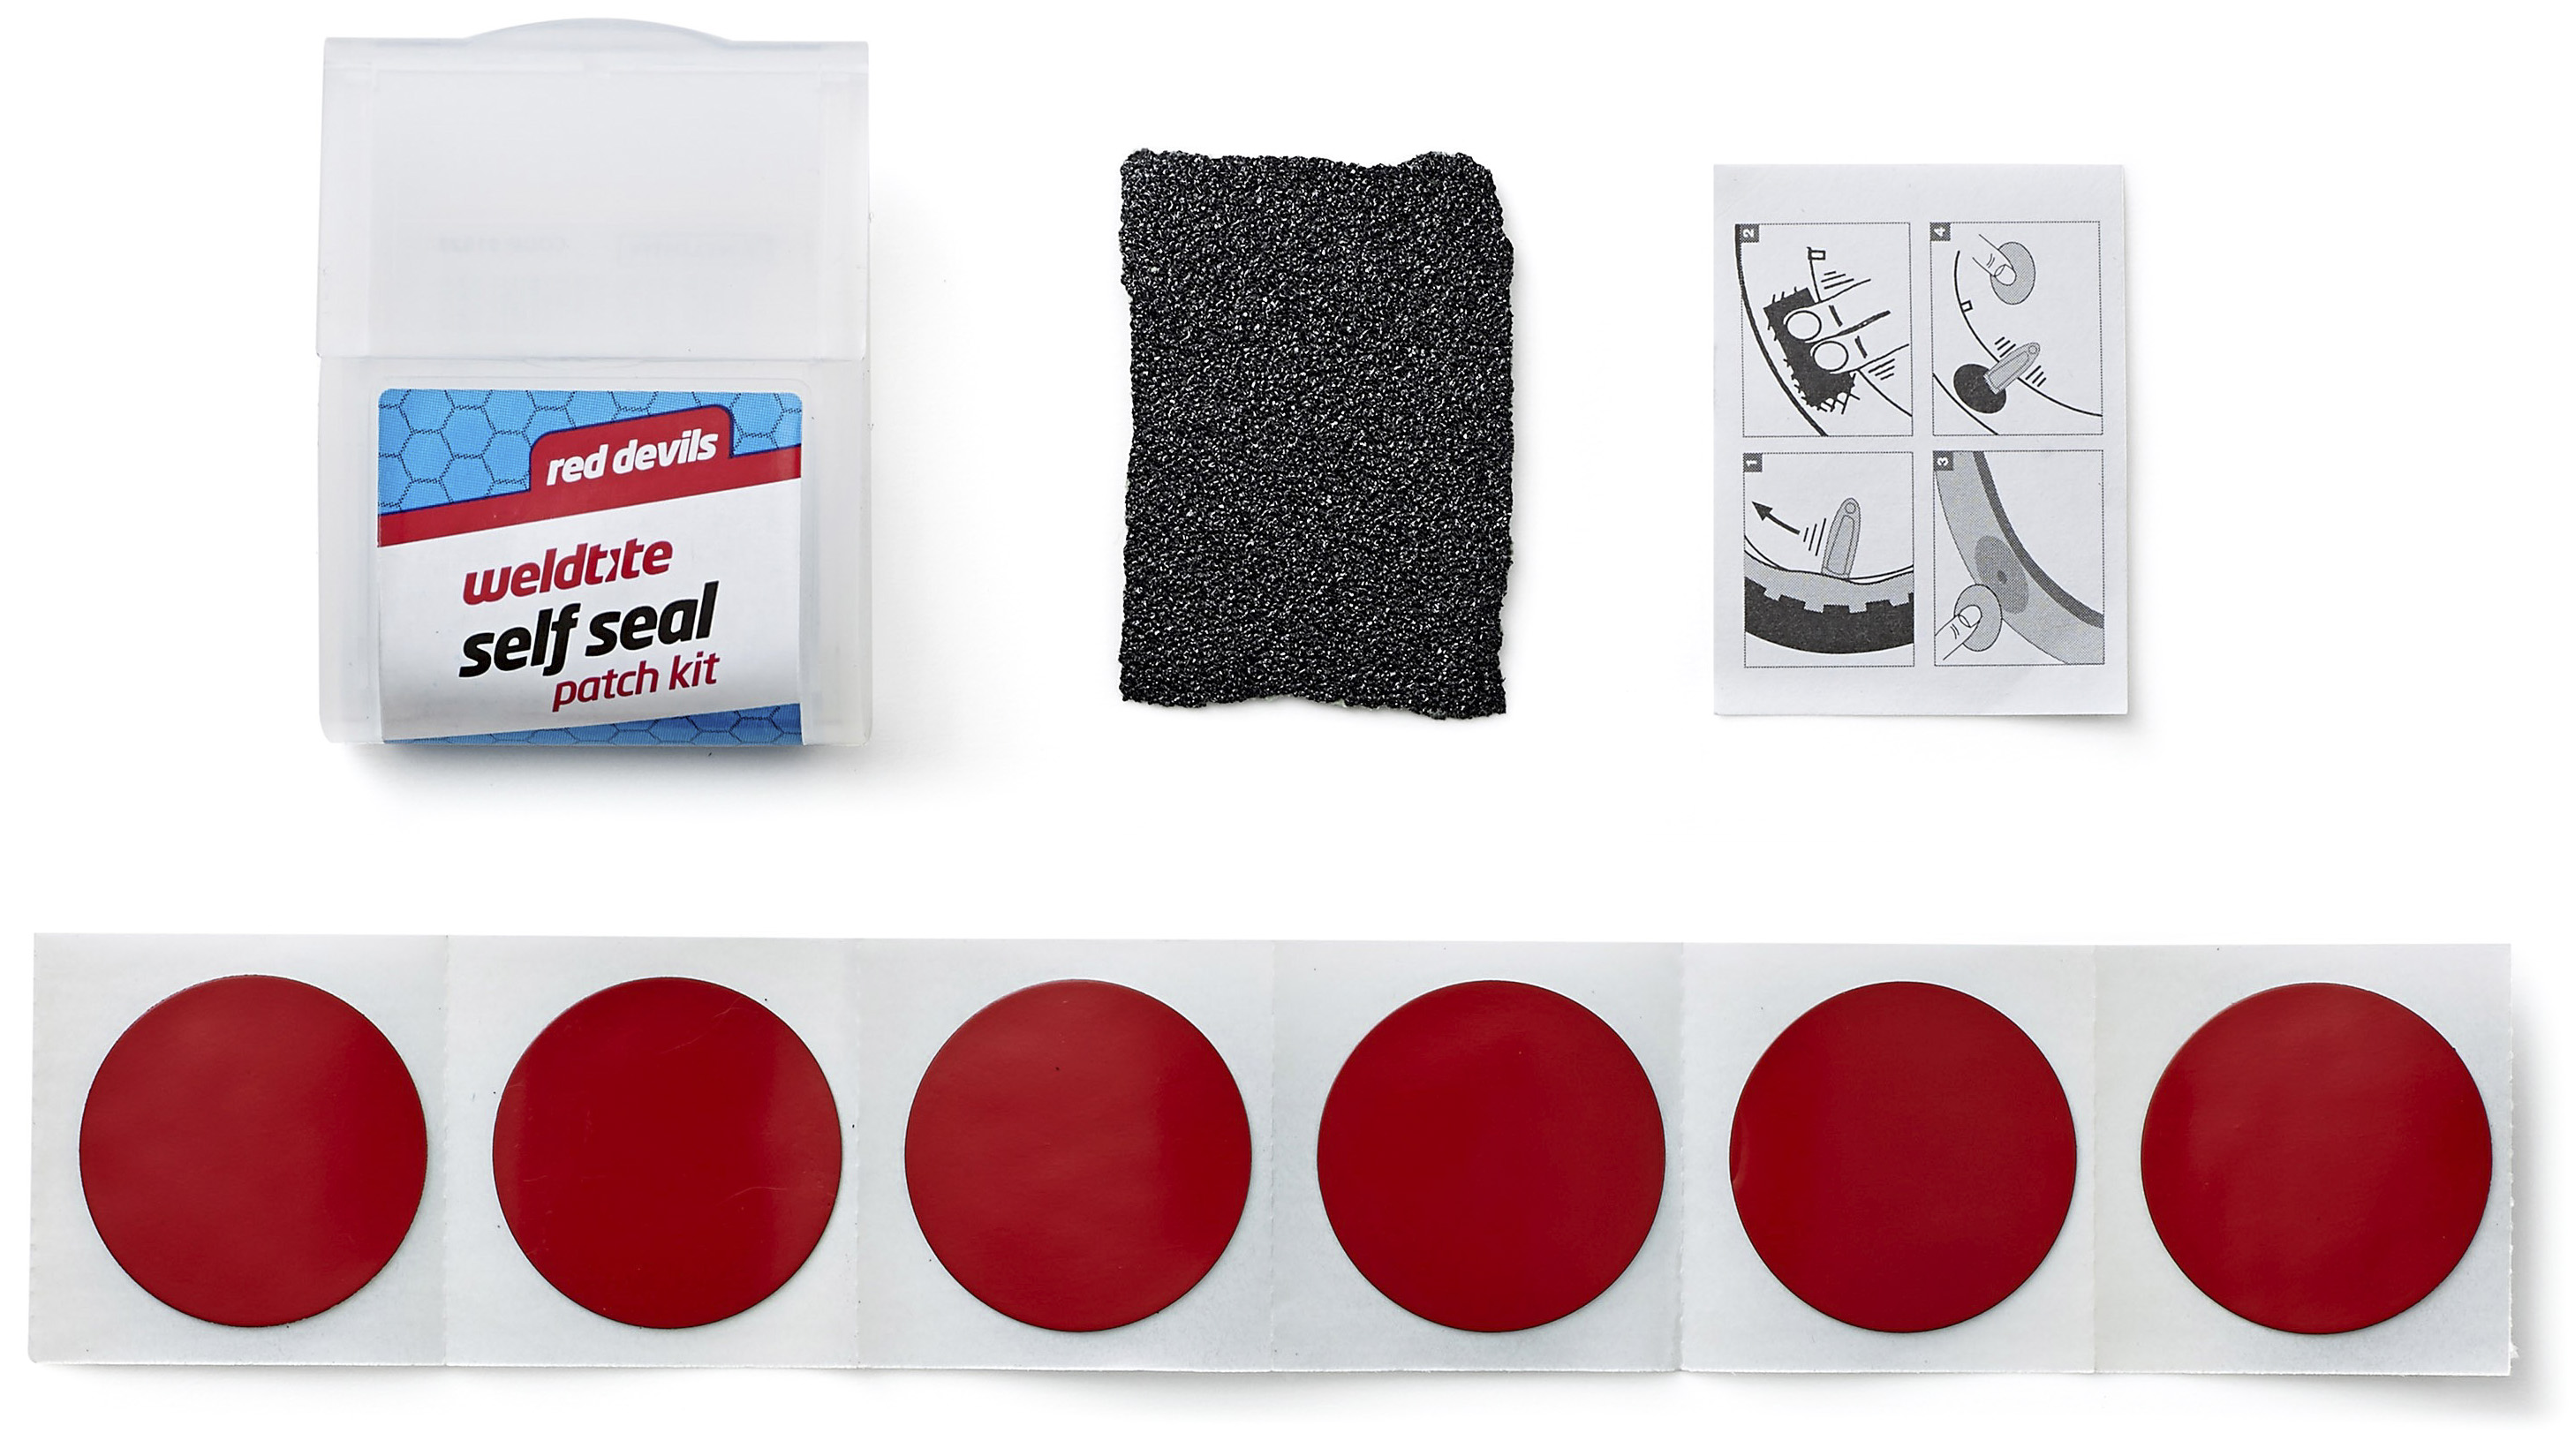 Weldtite Red Devils Patch Repair Kit | Repair Kit